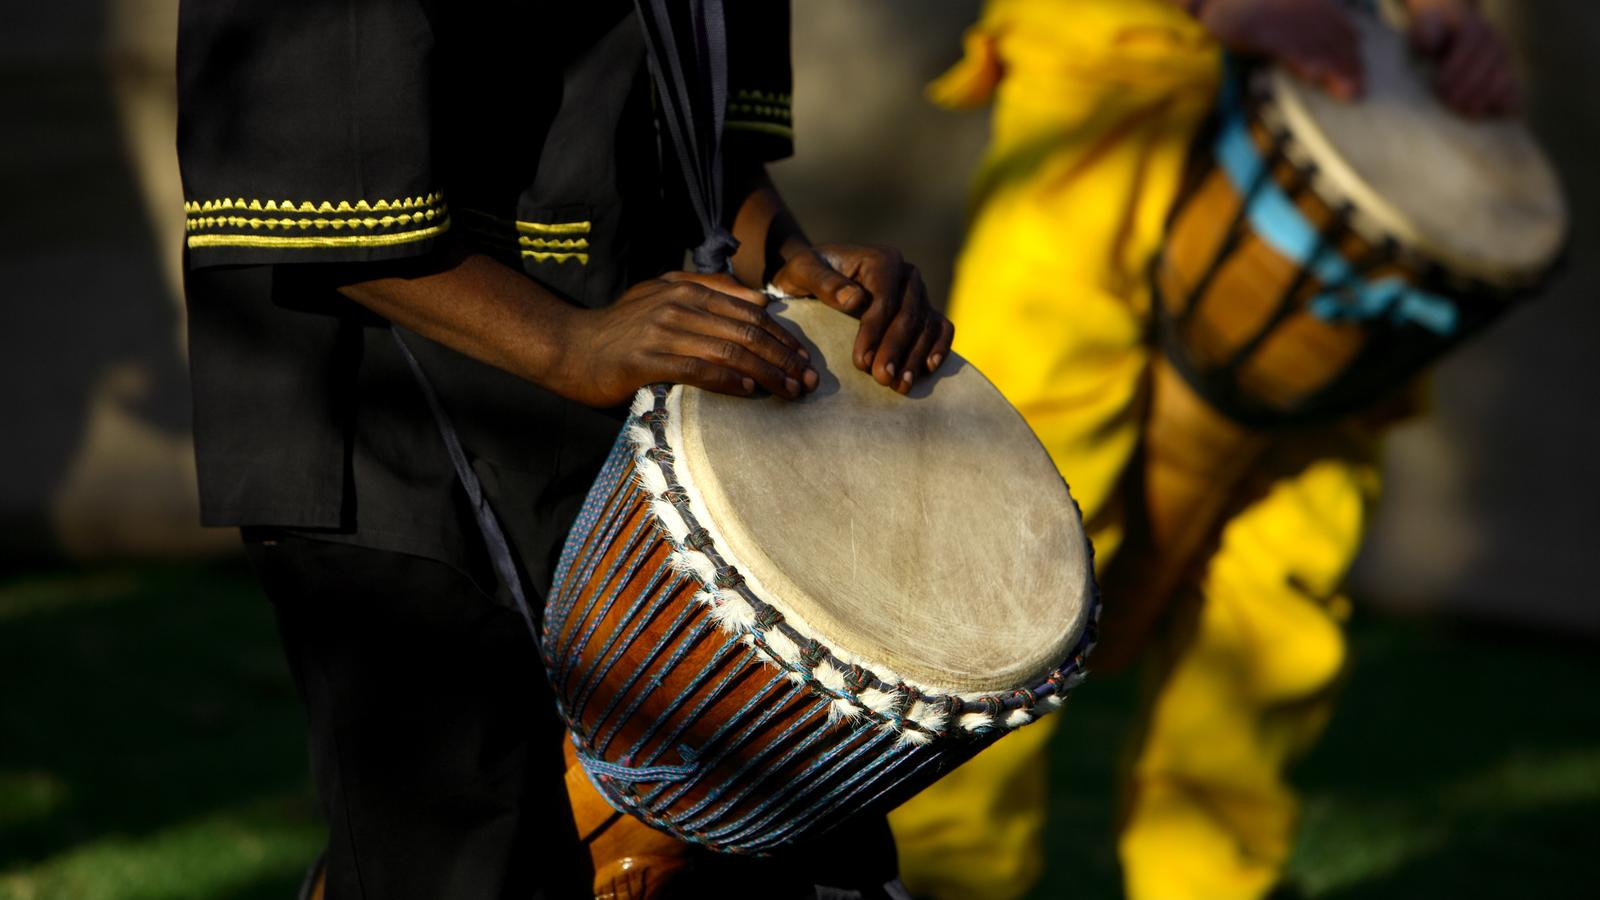 Close up of hands on drums during reggae performance